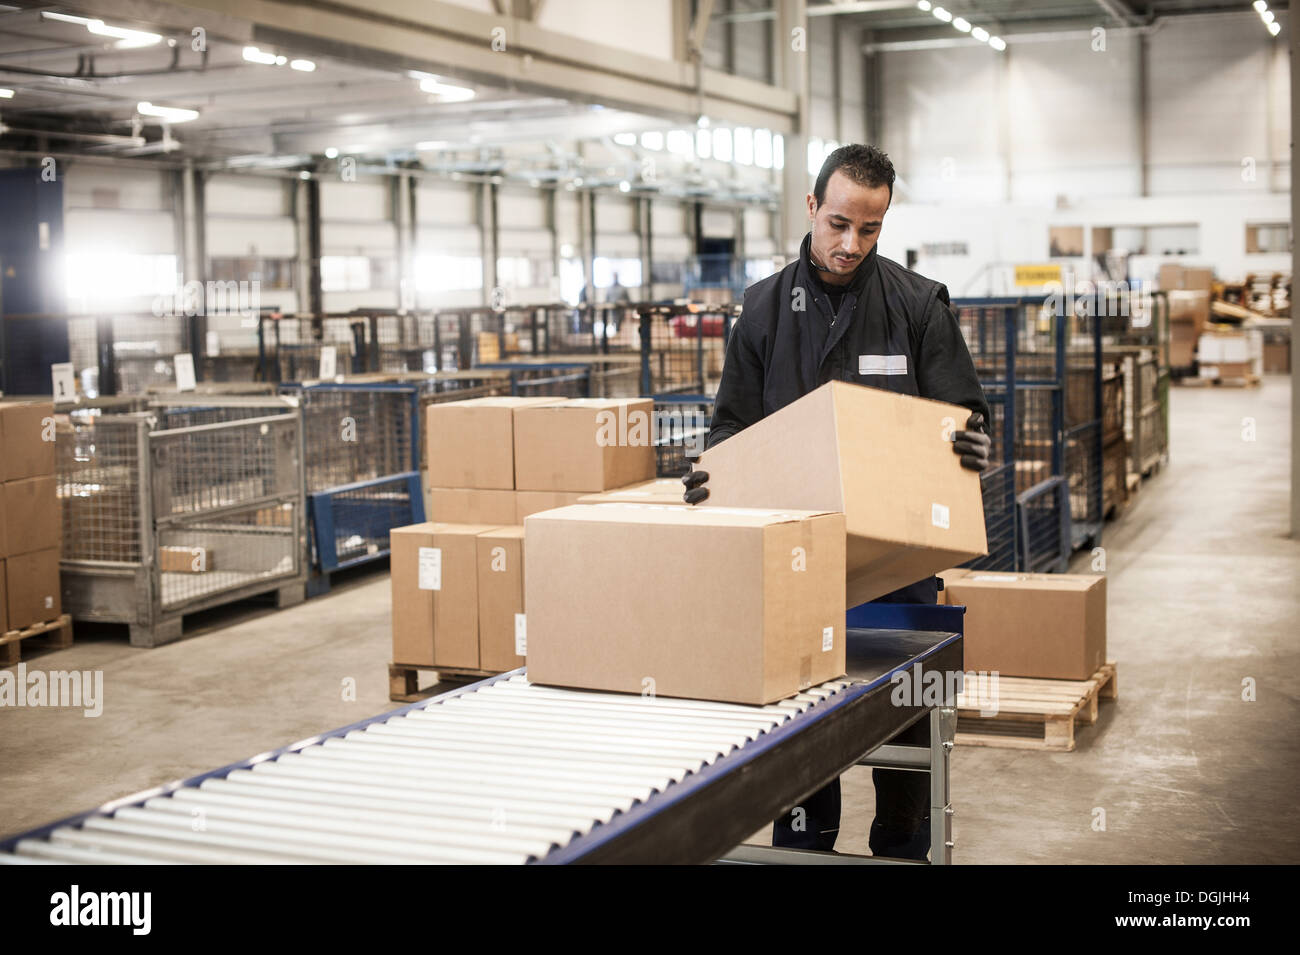 Male warehouse worker checking cardboard box from conveyor belt - Stock Image